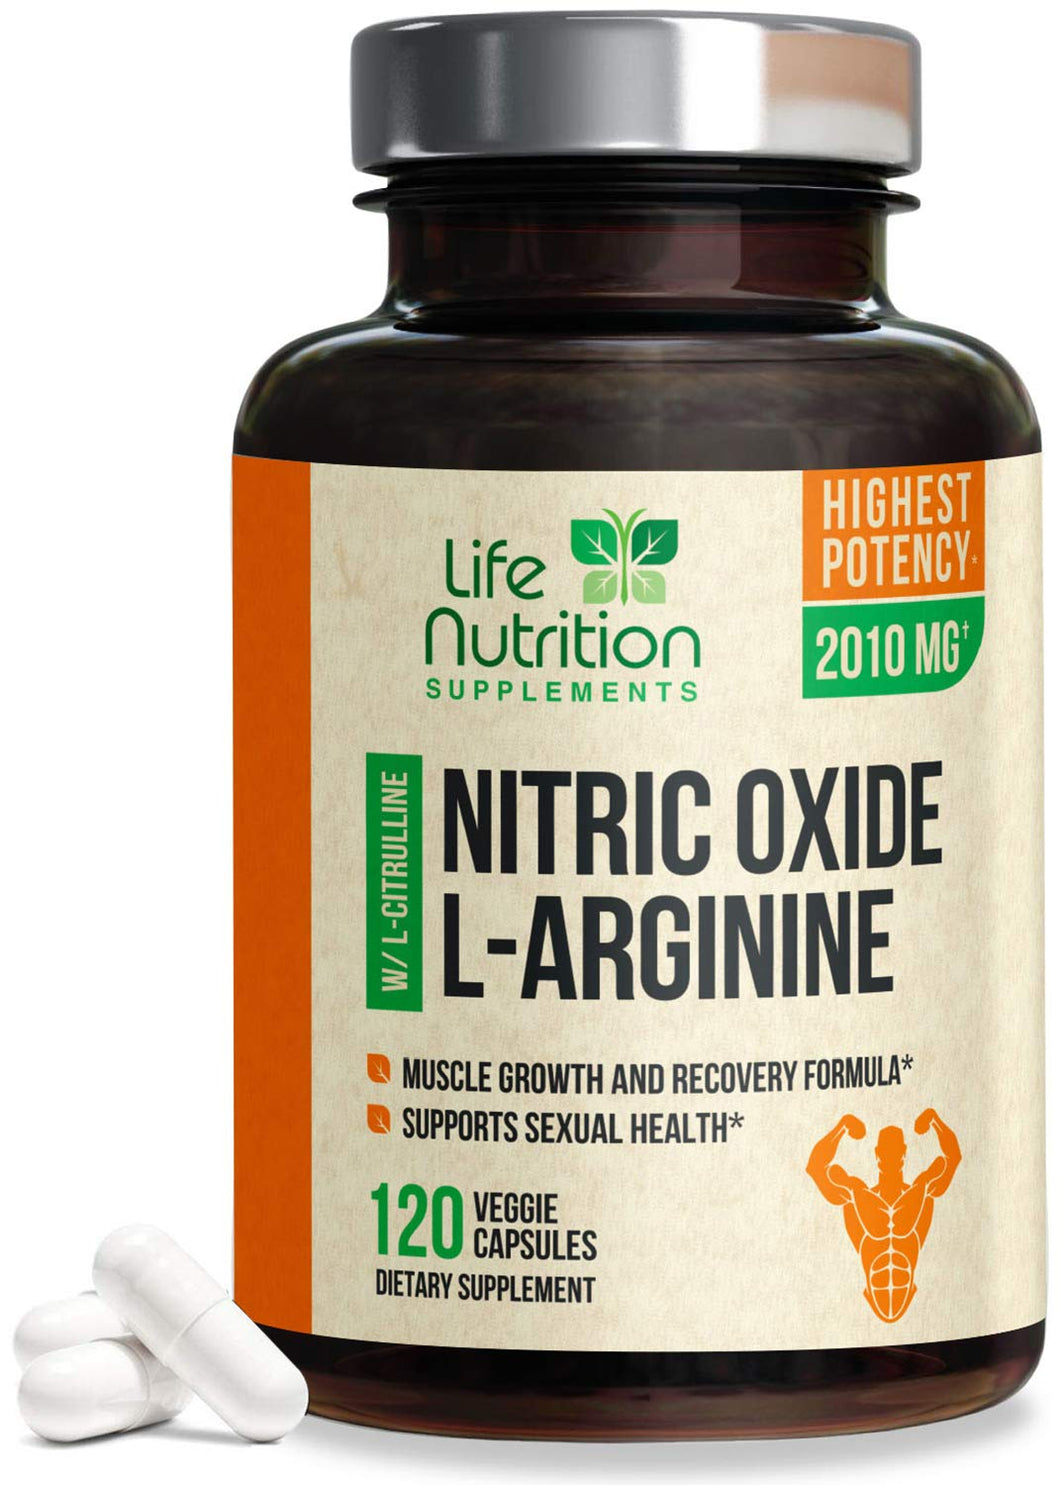 Extra Strength L Arginine Nitric Oxide Supplement 2010mg - Citrulline Malate, AAKG, Beta Alanine - Premium Muscle Building No Booster for Strength, Vascularity & Energy to Train Harder - 120 Capsules